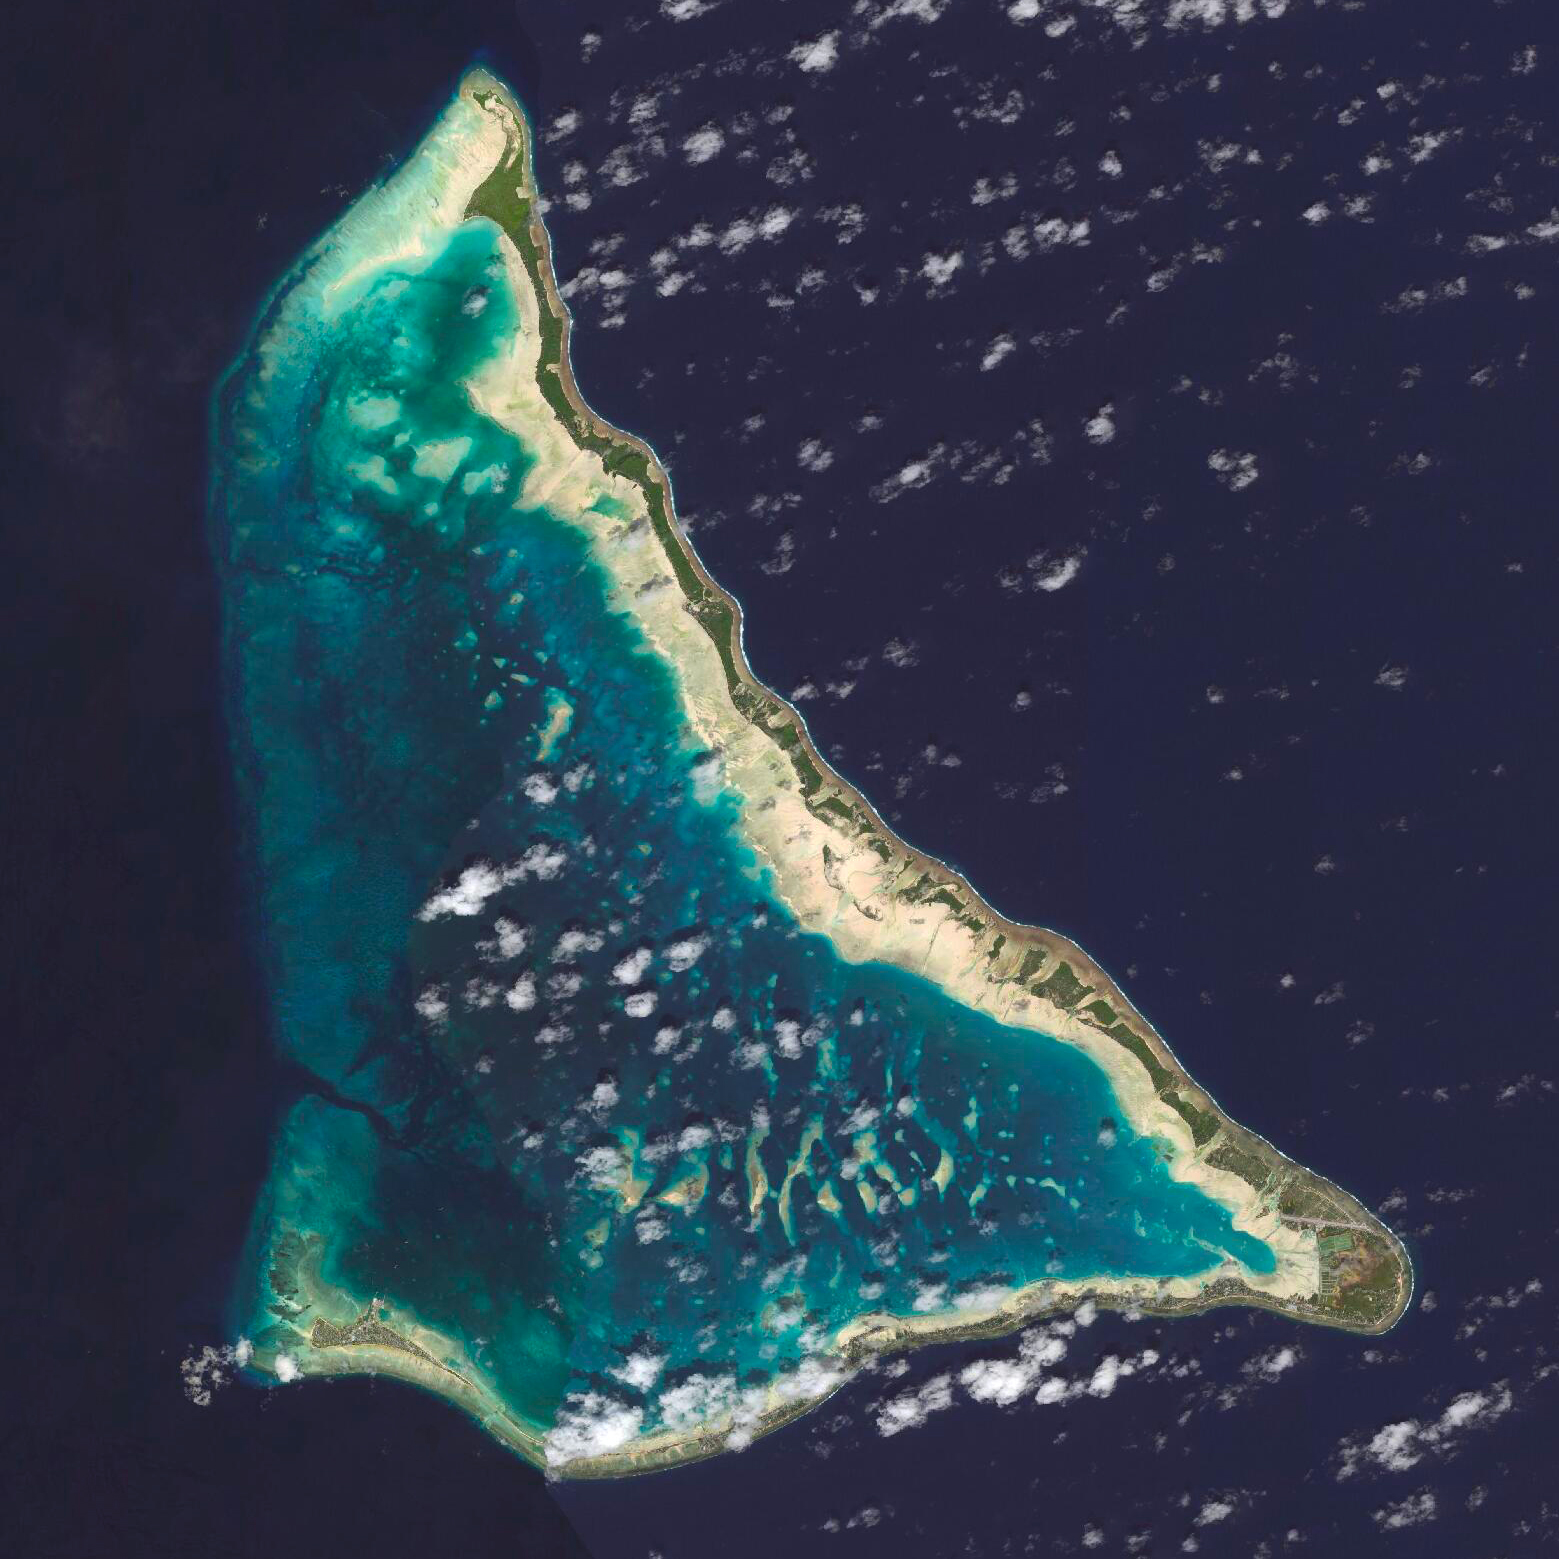 11/30/2015   Tarawa   Tarawa, Kiribati  1°25′N 173°02′E    The 2015 UN Climate Change Conference kicked off today in Paris. The event will bring together leaders from more than 190 countries with the goal of creating a legally binding and universal climate agreement that will keep global warming below 2°C. Daily Overview is providing imagery for the UN's #EarthToParis event next week and we'll be closely following what comes of the discussions at #cop21 in the coming days.  At the conference today, Anote Tong, the president of Kiribati — a low-lying island nation in the Central Pacific Ocean —expressed his gratitude to the country of Fiji. The 102,000 residents of Kiribati may be forced to relocate as increased ice melt causes the Pacific Ocean to rise and submerges its islands. Fiji has boldly offered to take in the people of Kiribati if that occurs. Tarawa, an atoll that serves as the capital of the country and is home to half of it's population, is seen here.